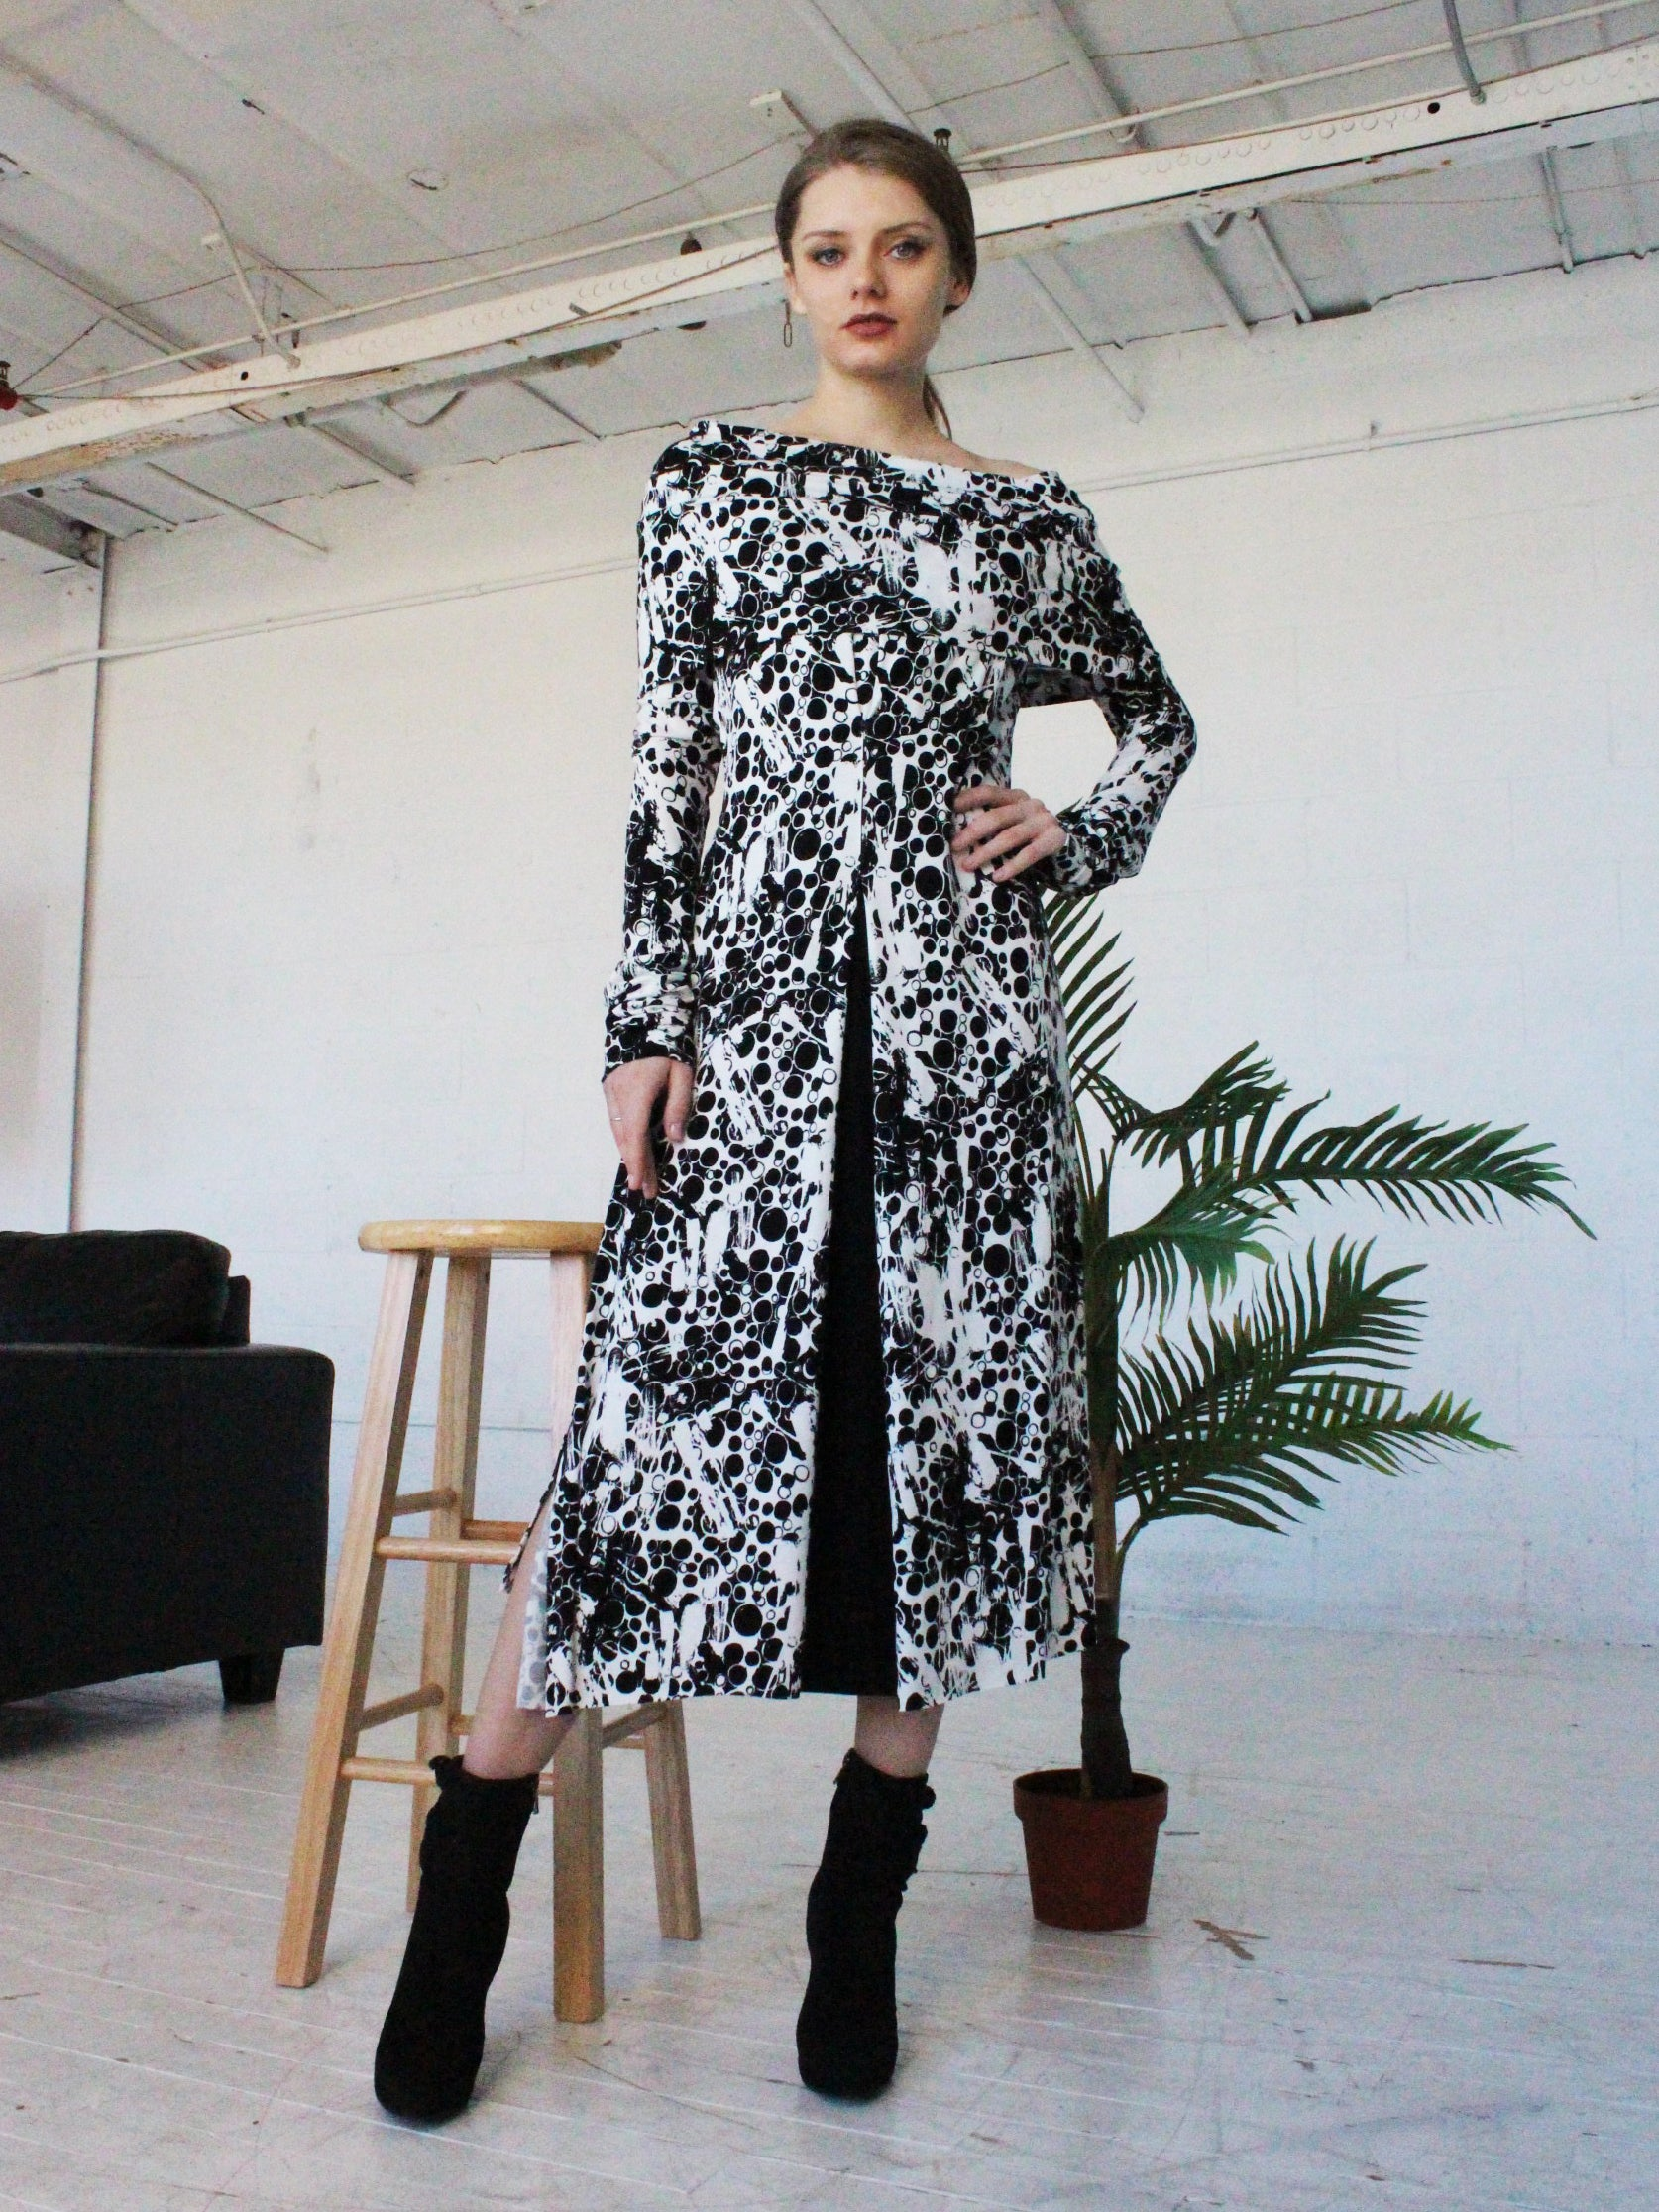 Ying Cai _ AW 21 Look 10 - 1